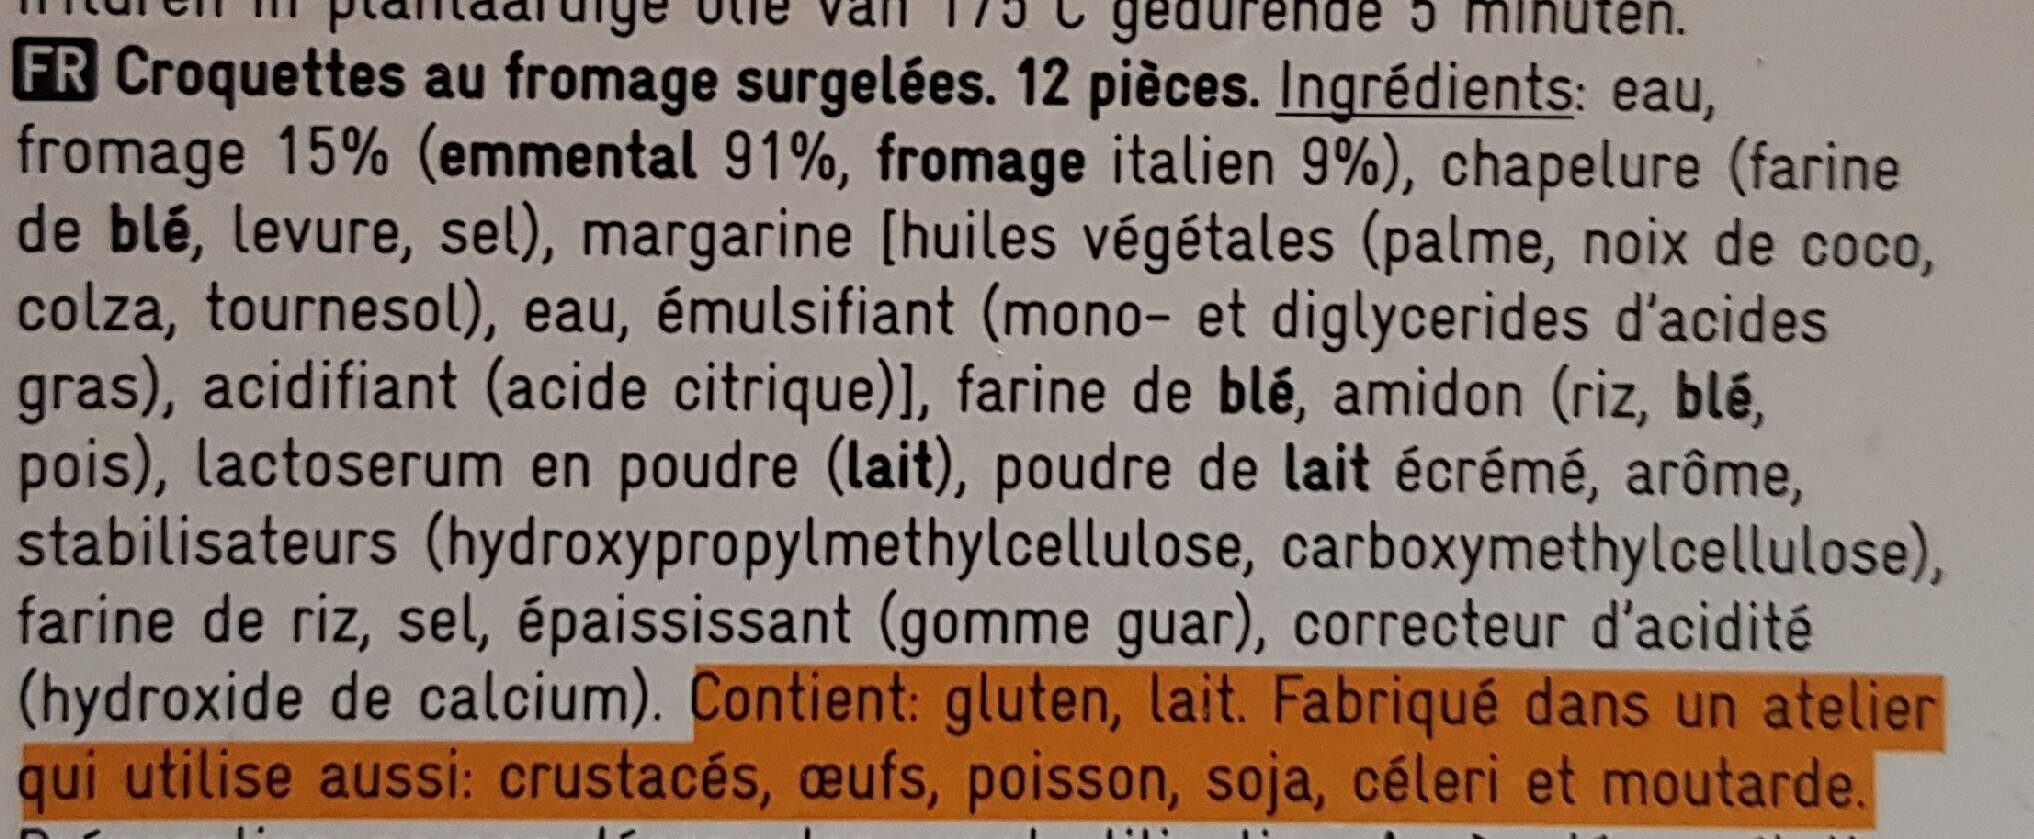 Croquettes au fromage - Ingredients